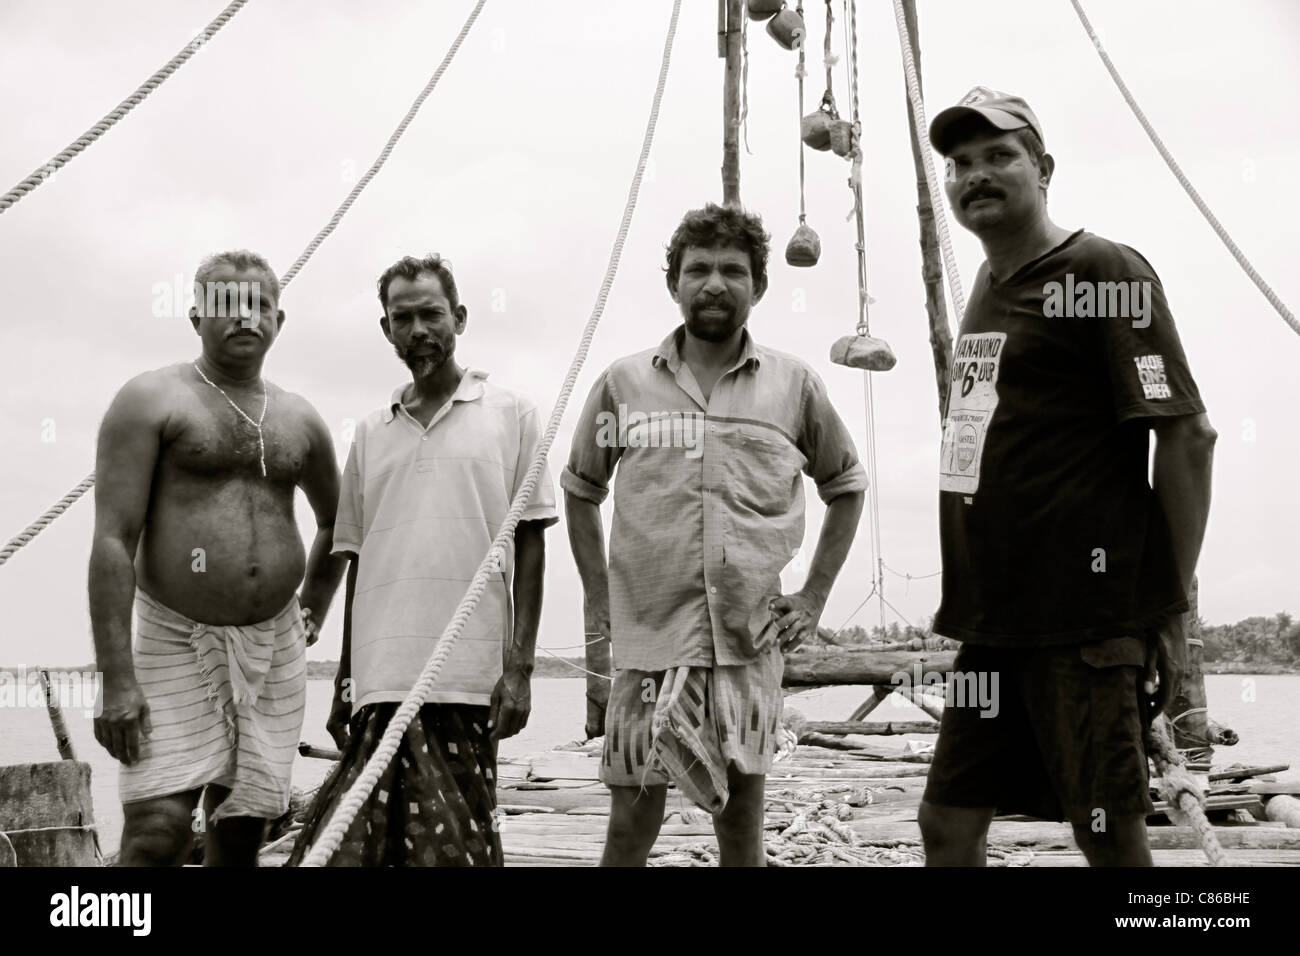 Four fishermen with their Chinese fishing nets in Kochi, Kerala, India - Stock Image